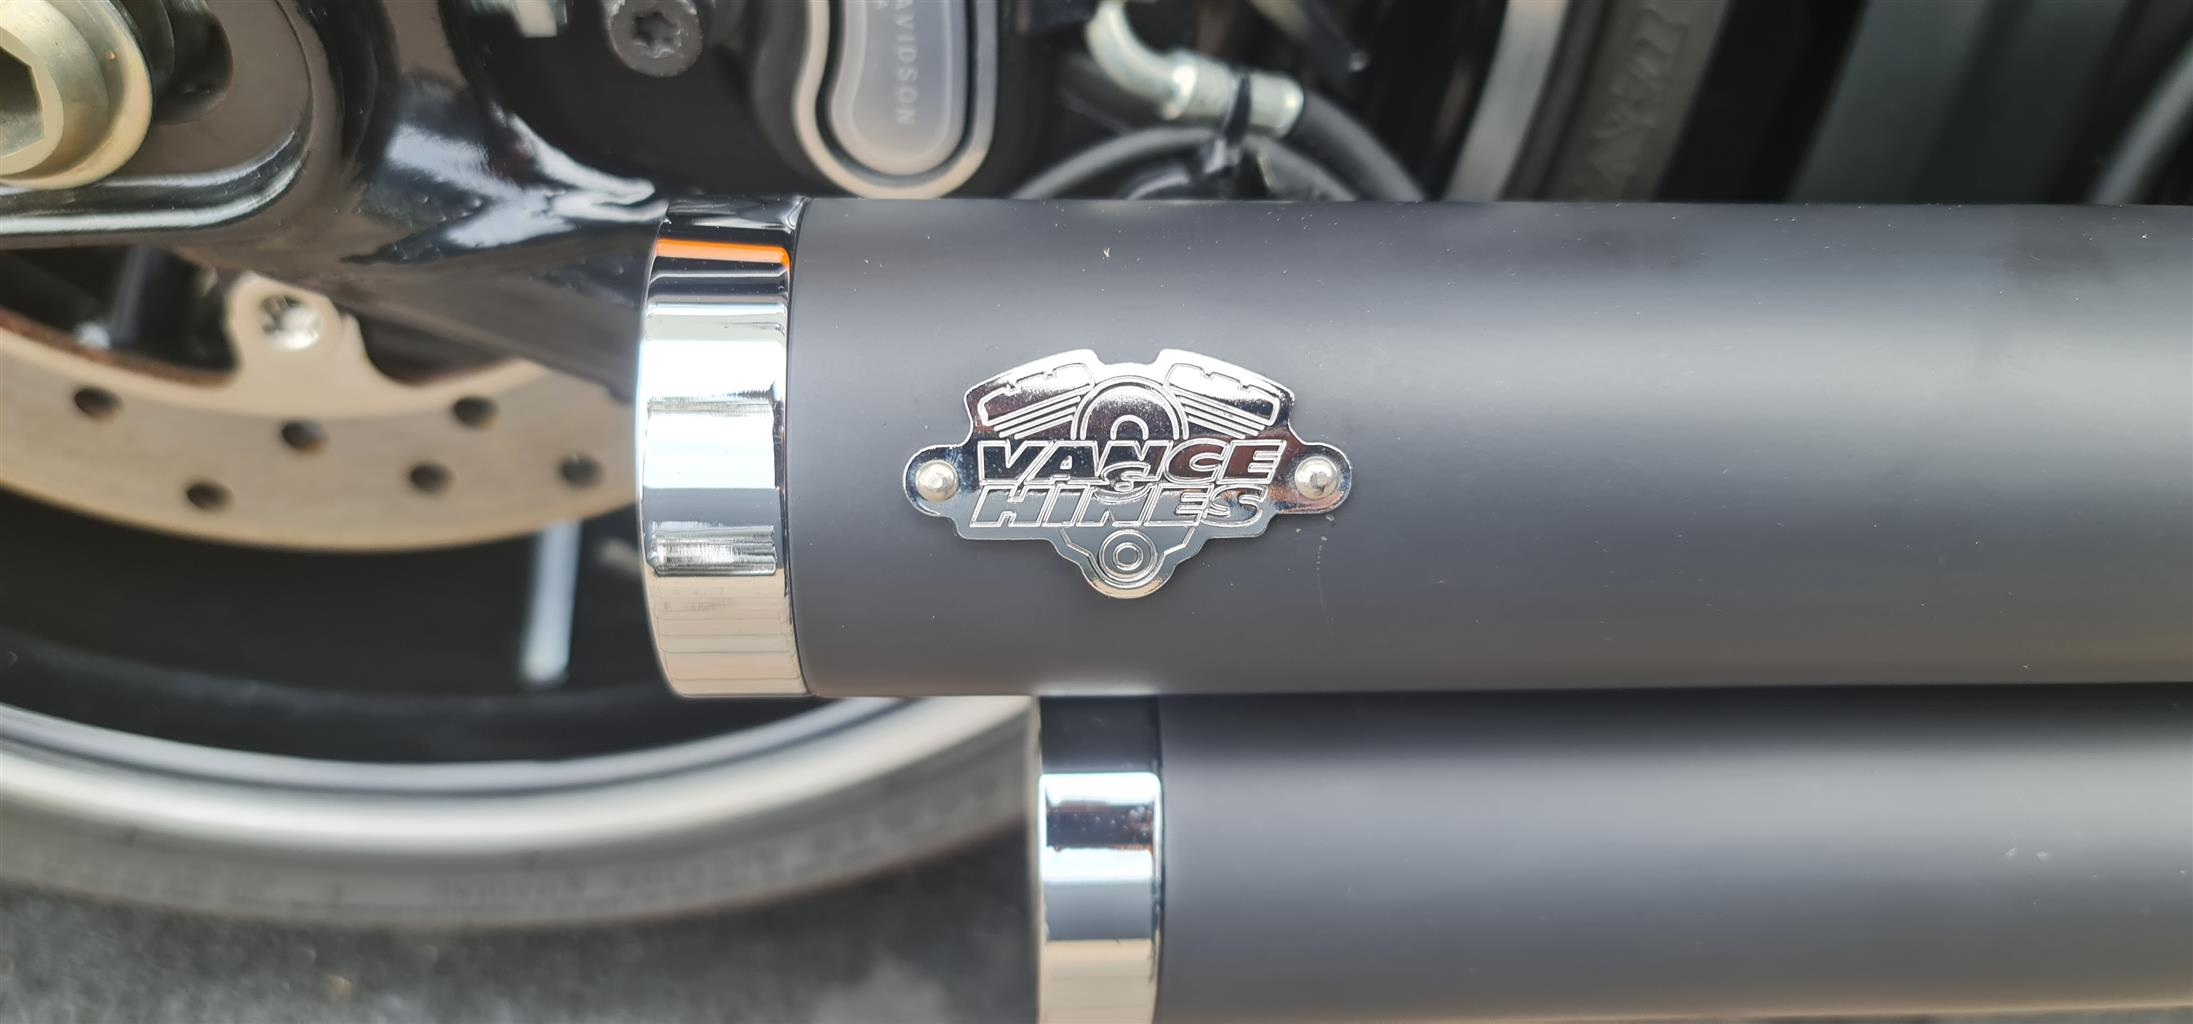 Vance & Hines system